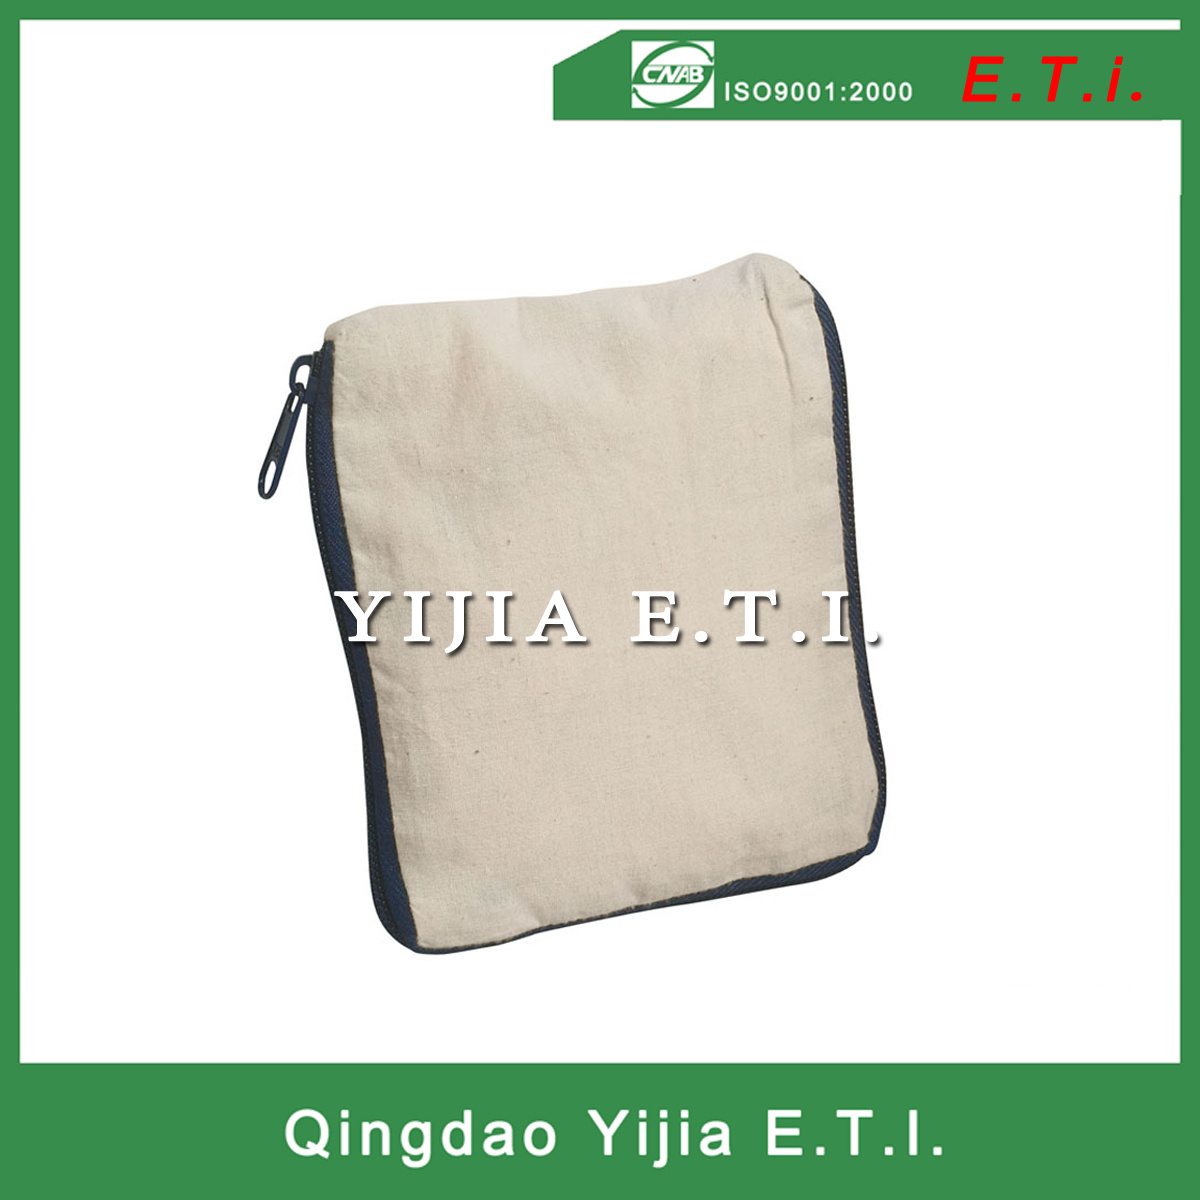 Eco Friendly Extralarge Cotton Foldable Tote Bag